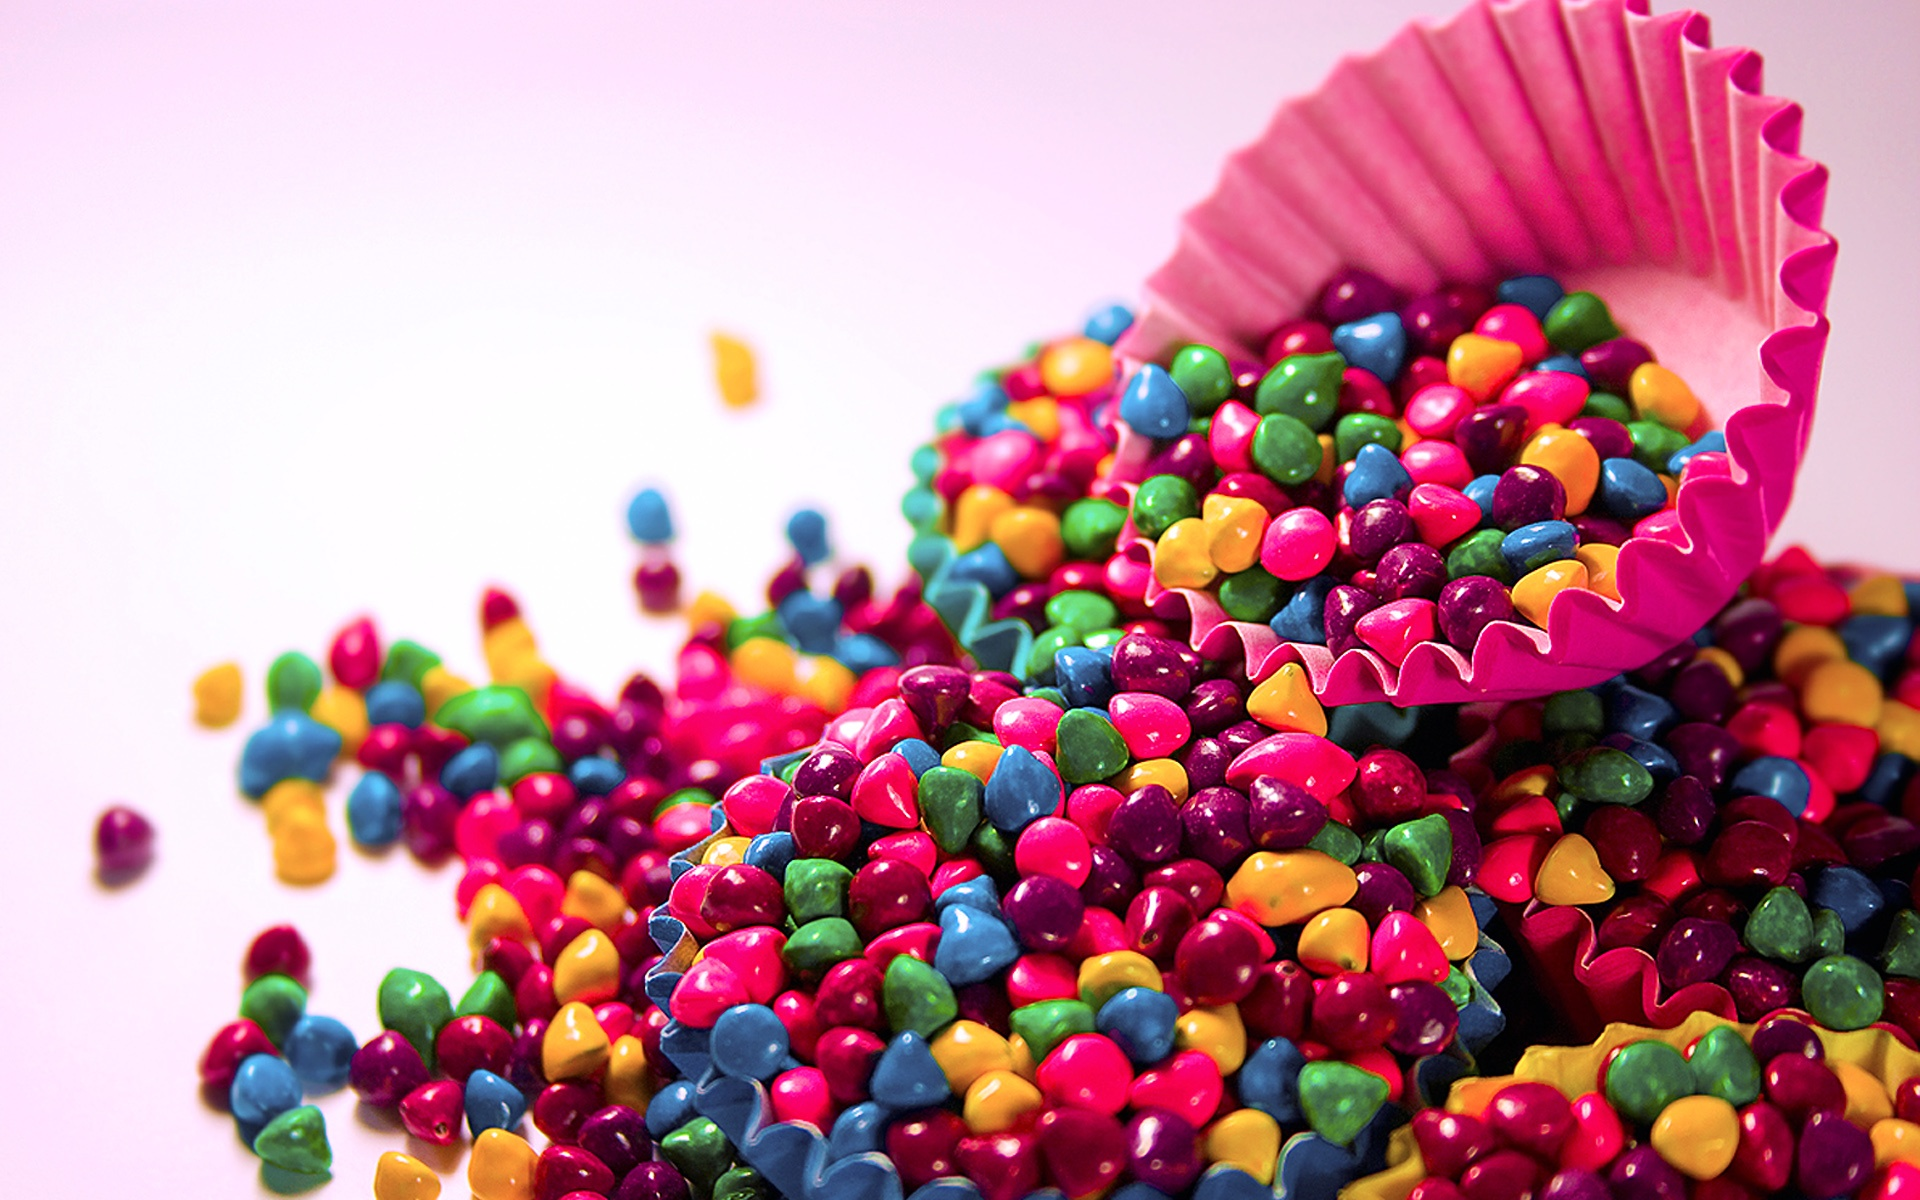 Colorful Wallpapers, Candies in a Cupcake 762.36 Kb